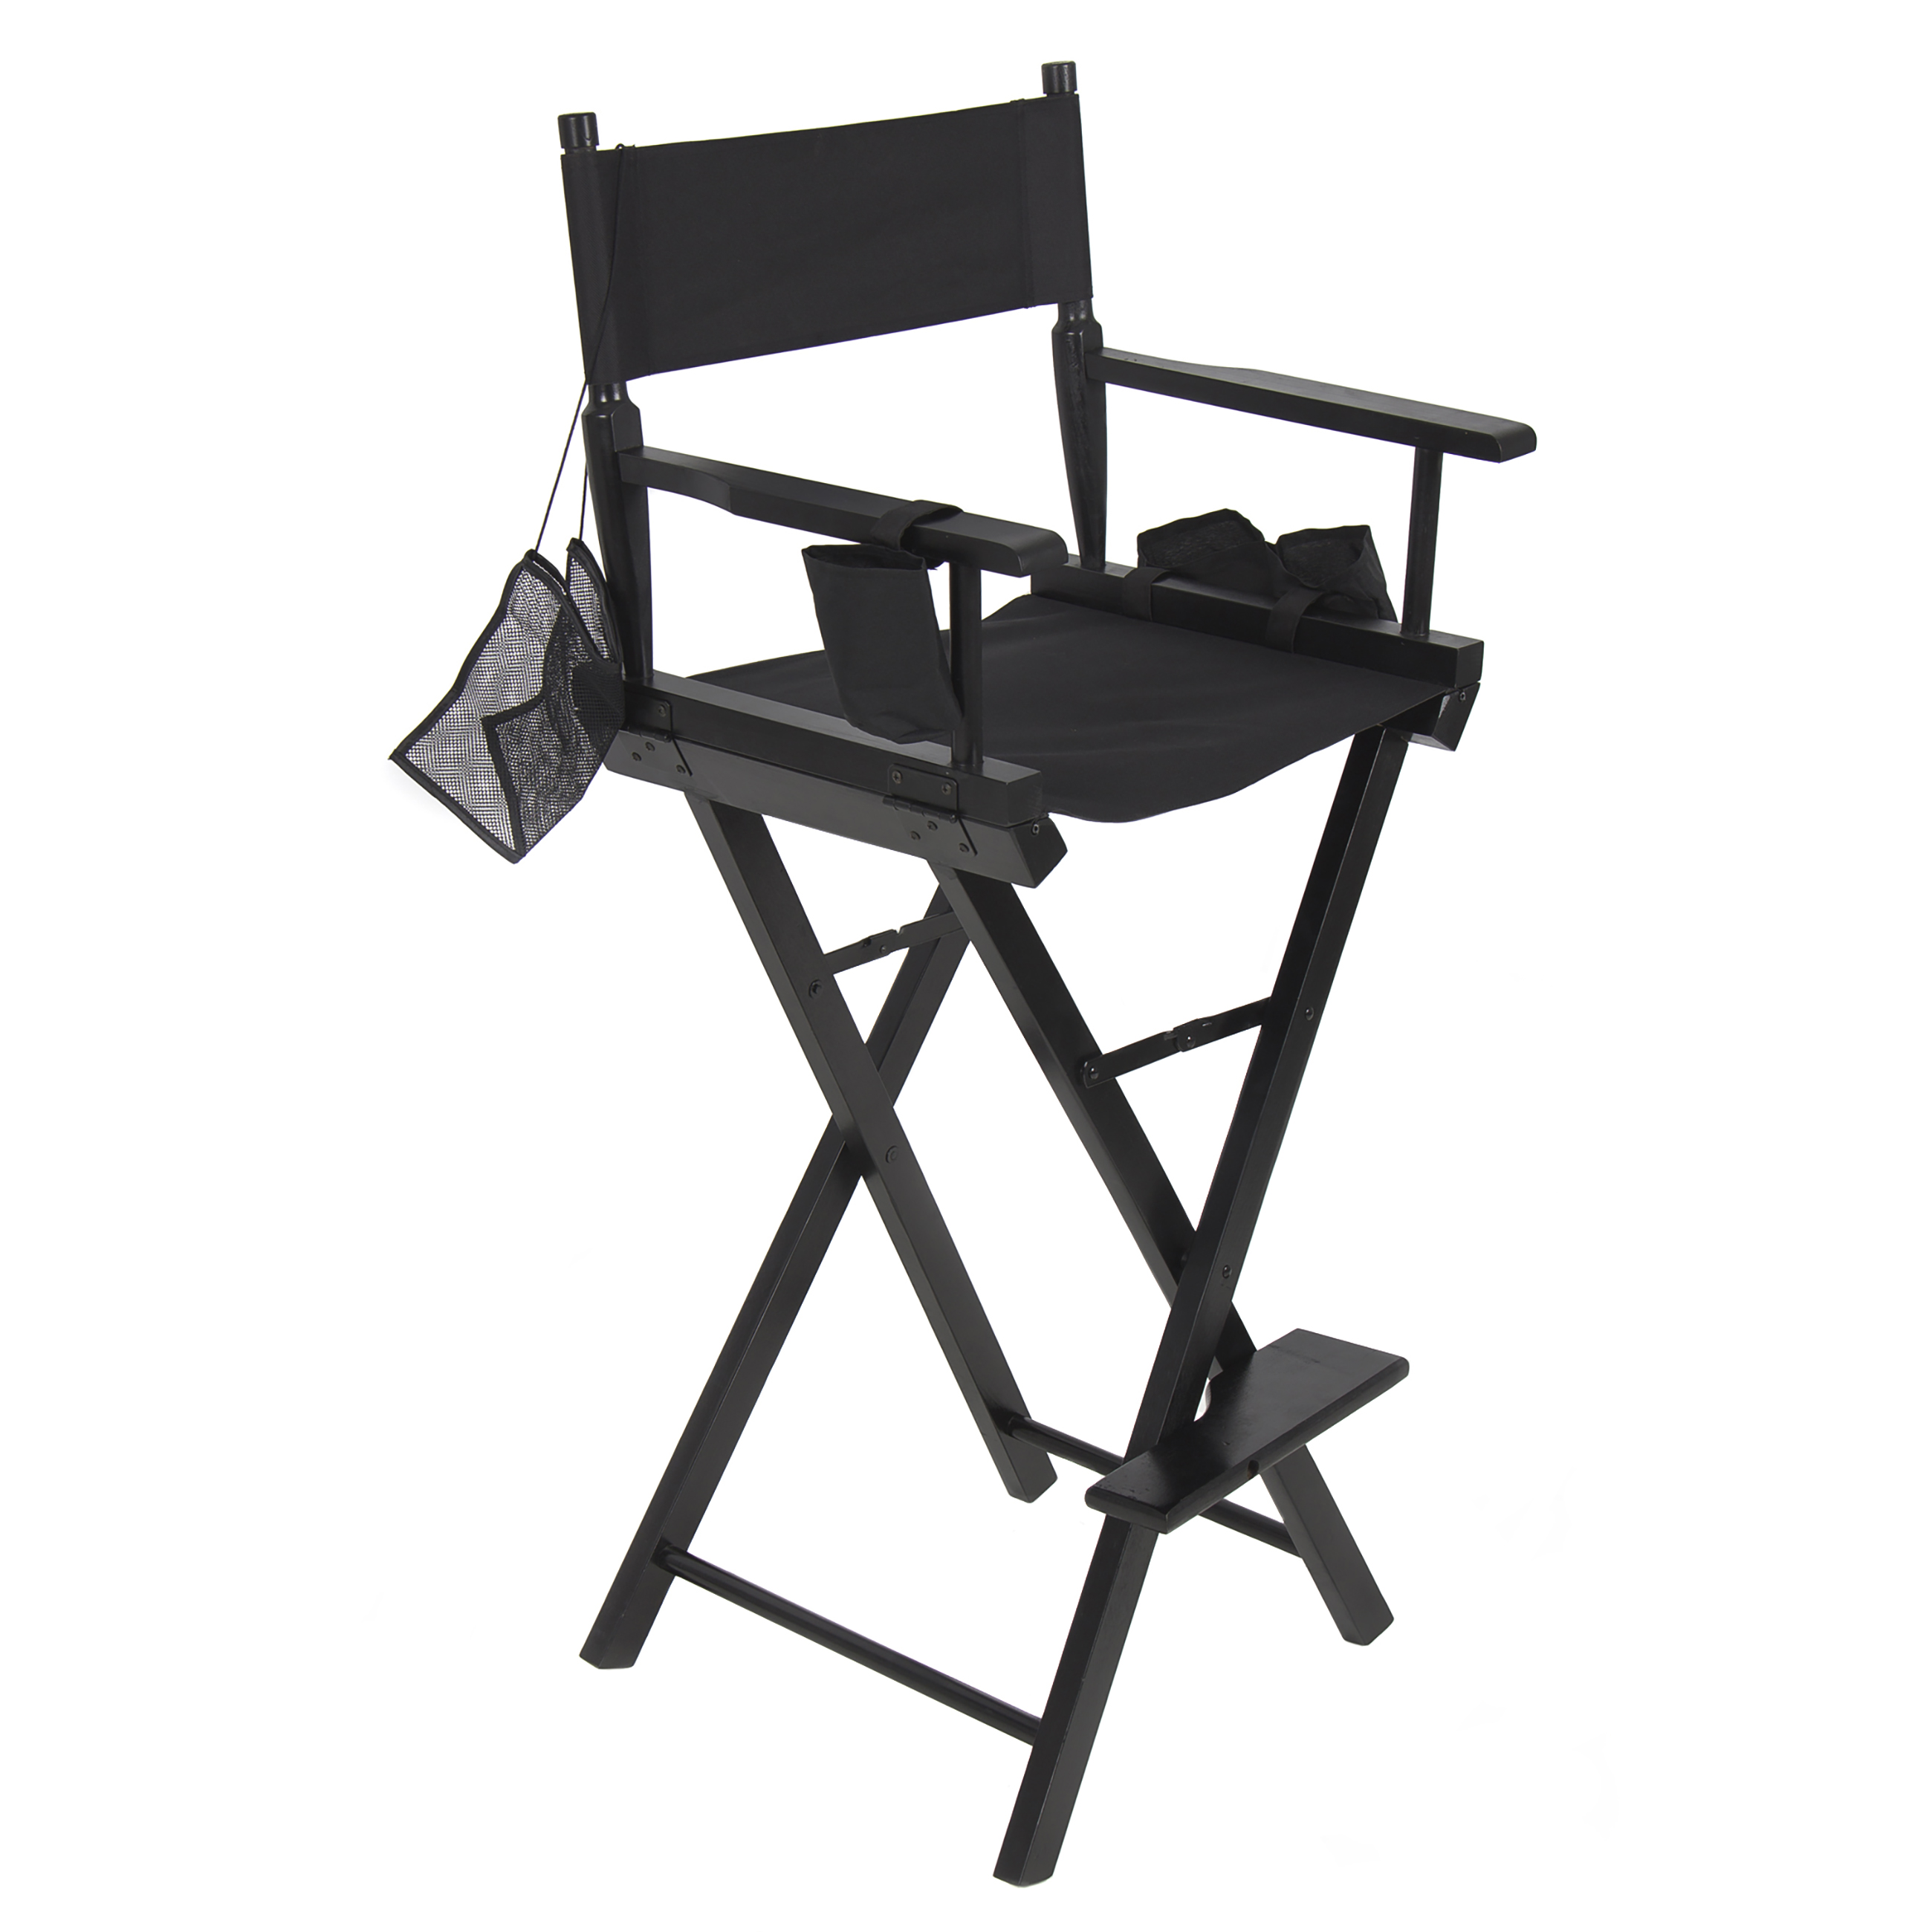 Best Choice Products Foldable Lightweight Professional Makeup Artist Directors Chair w/ Water Bottle Holder, Accessory Pouch, Small Storage Pouches - Black